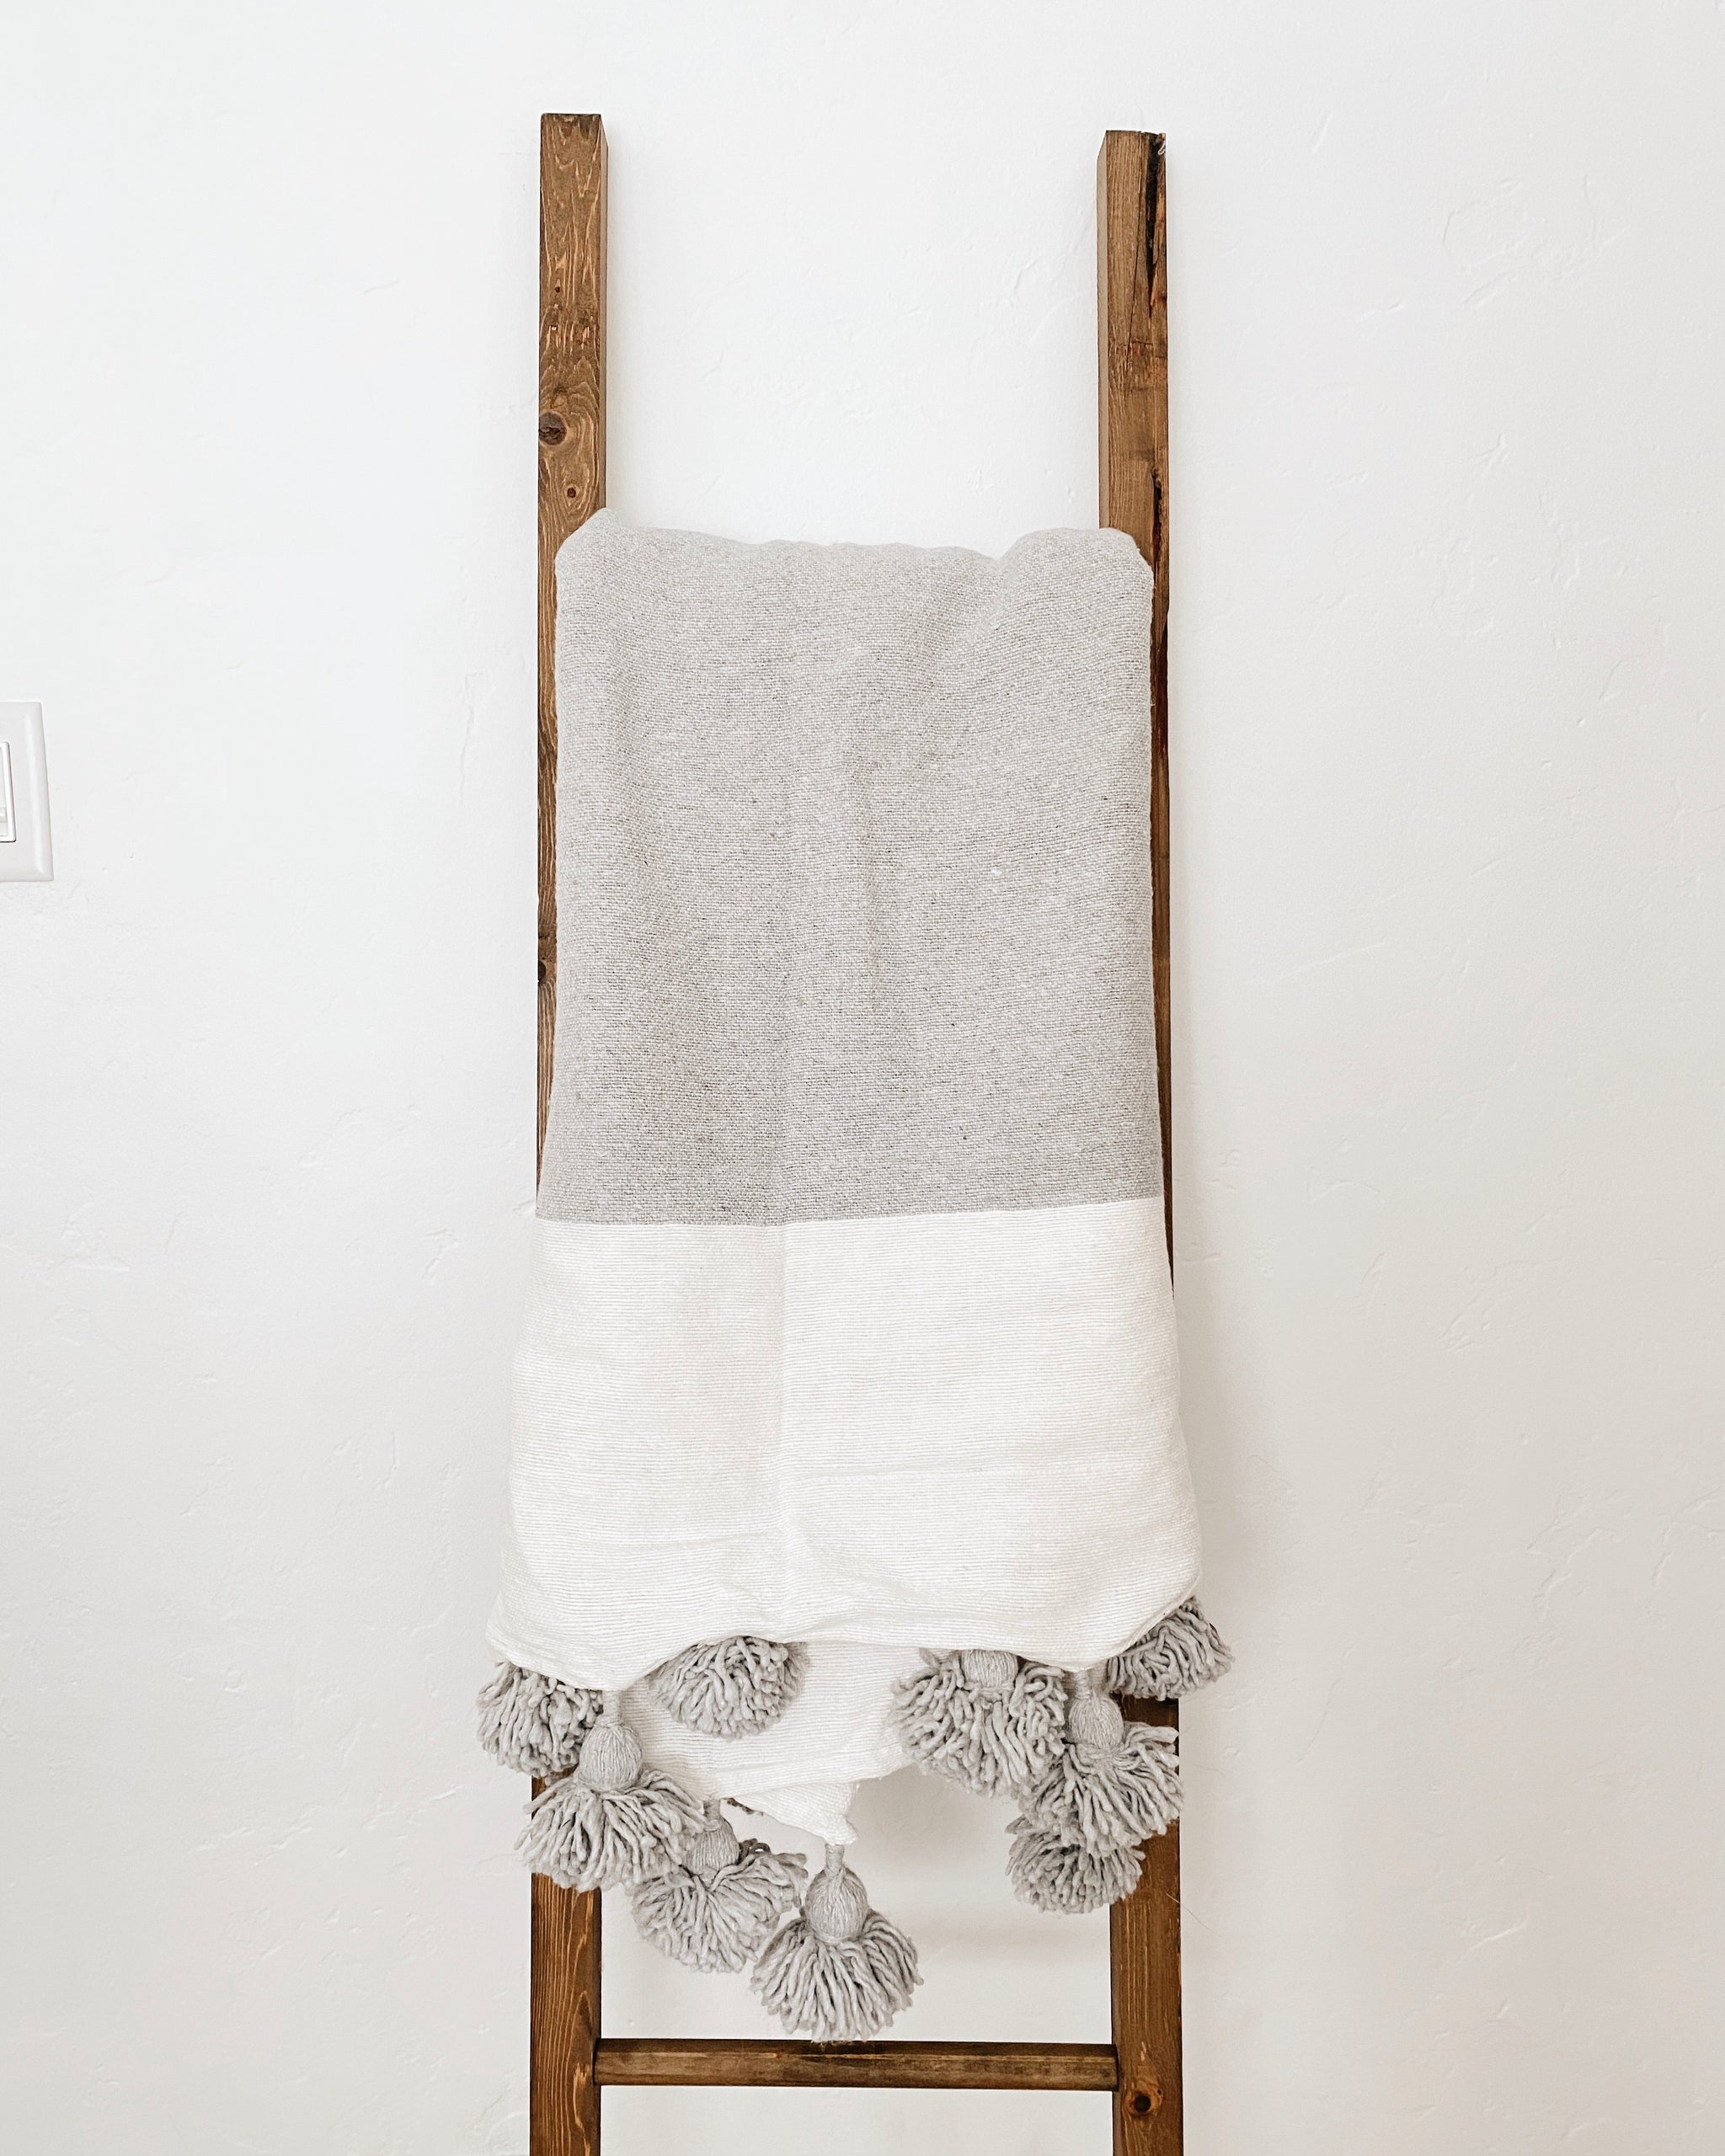 El Dorado Blanket, 100% Cotton Moroccan Pom Pom Blanket, Heather Grey and White